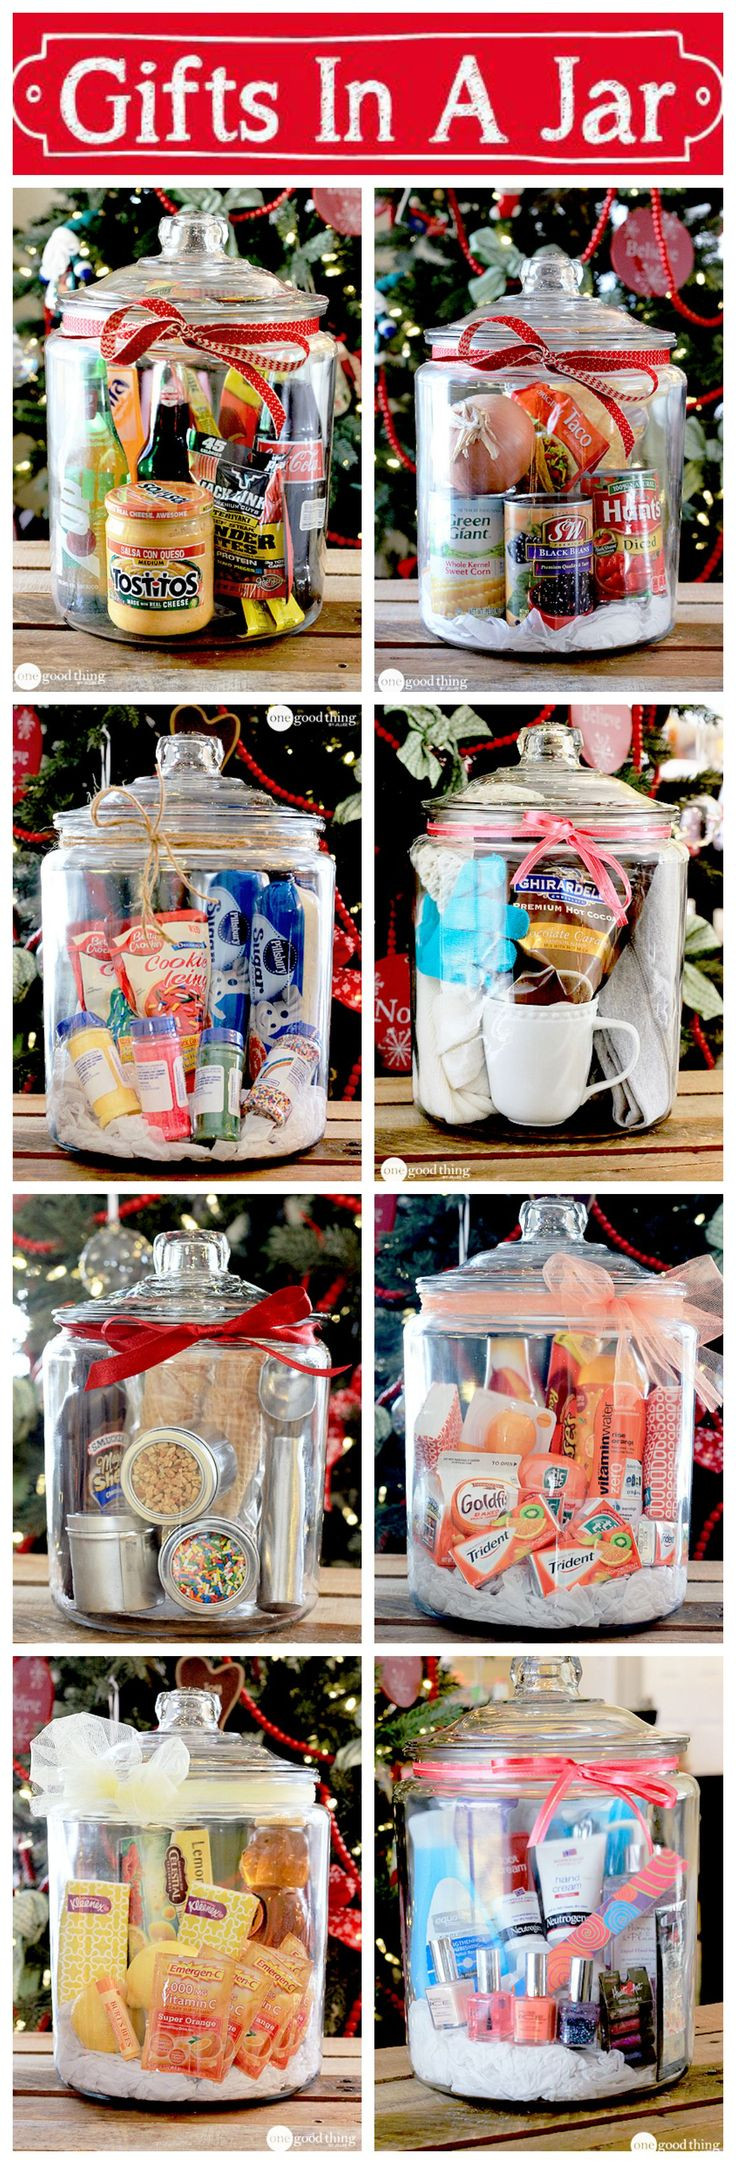 Best ideas about Inexpensive Birthday Gifts . Save or Pin 25 Best Ideas about Inexpensive Birthday Gifts on Now.